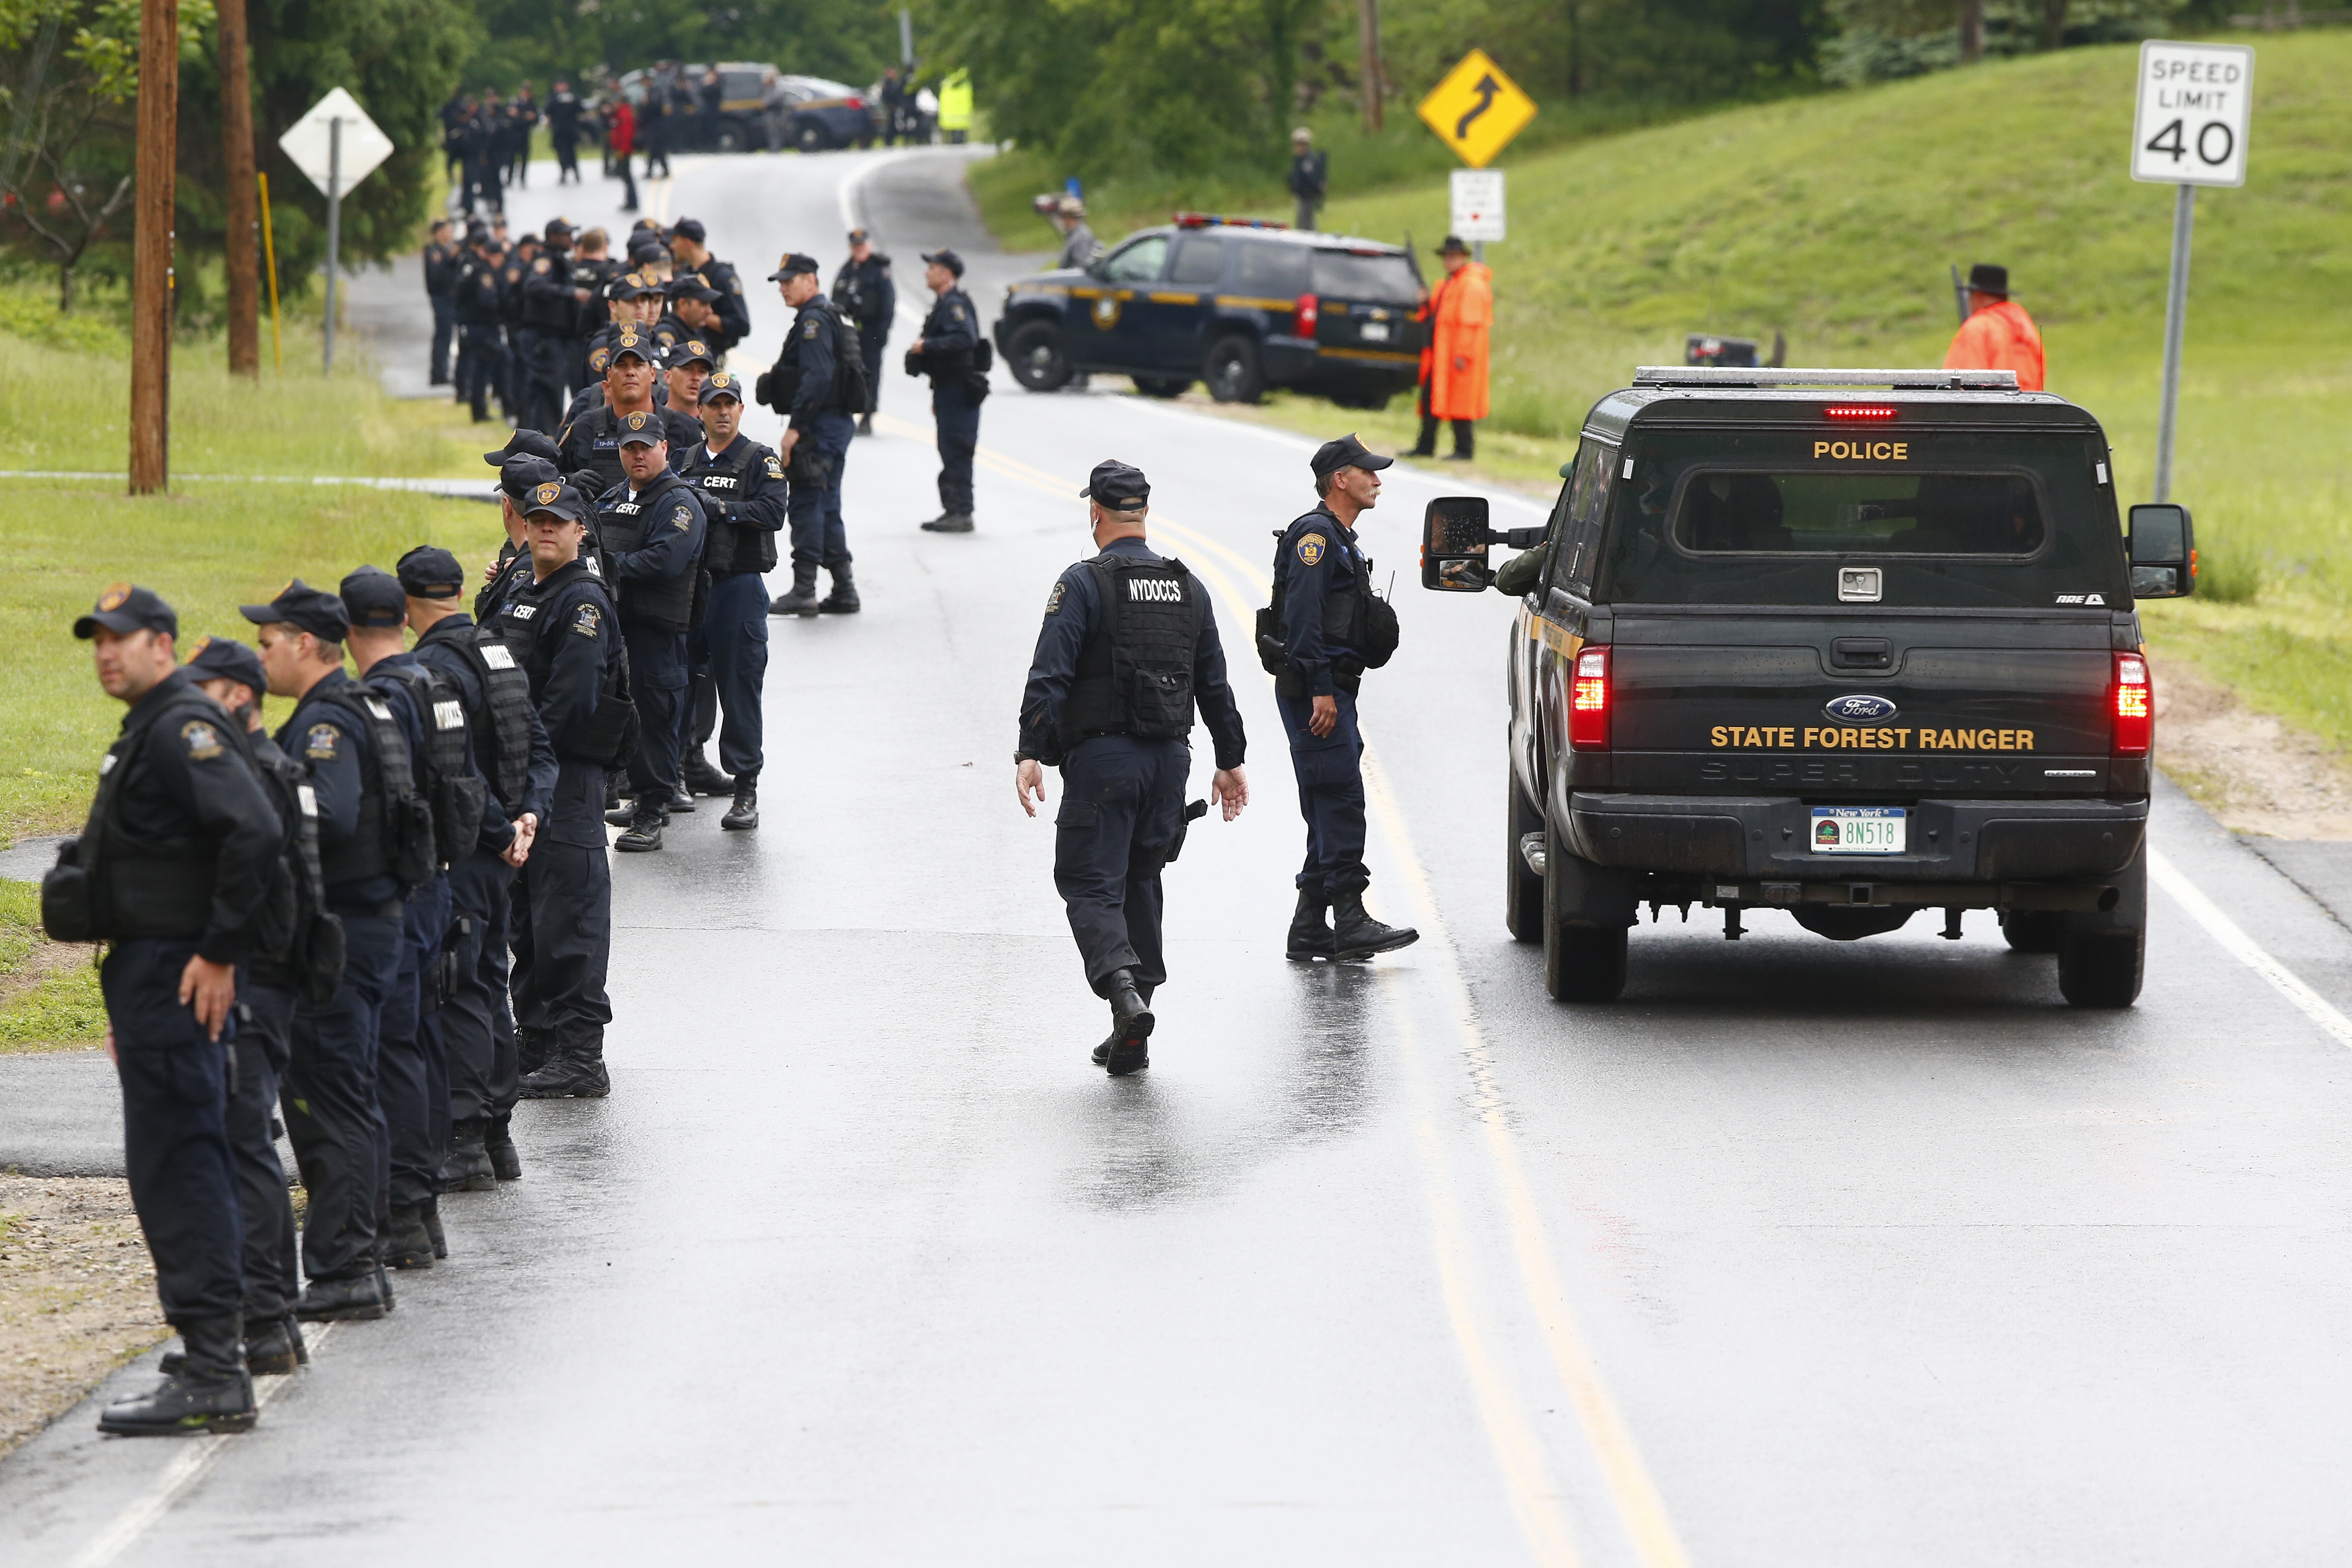 Search for escaped killers focuses on inhospitable woods